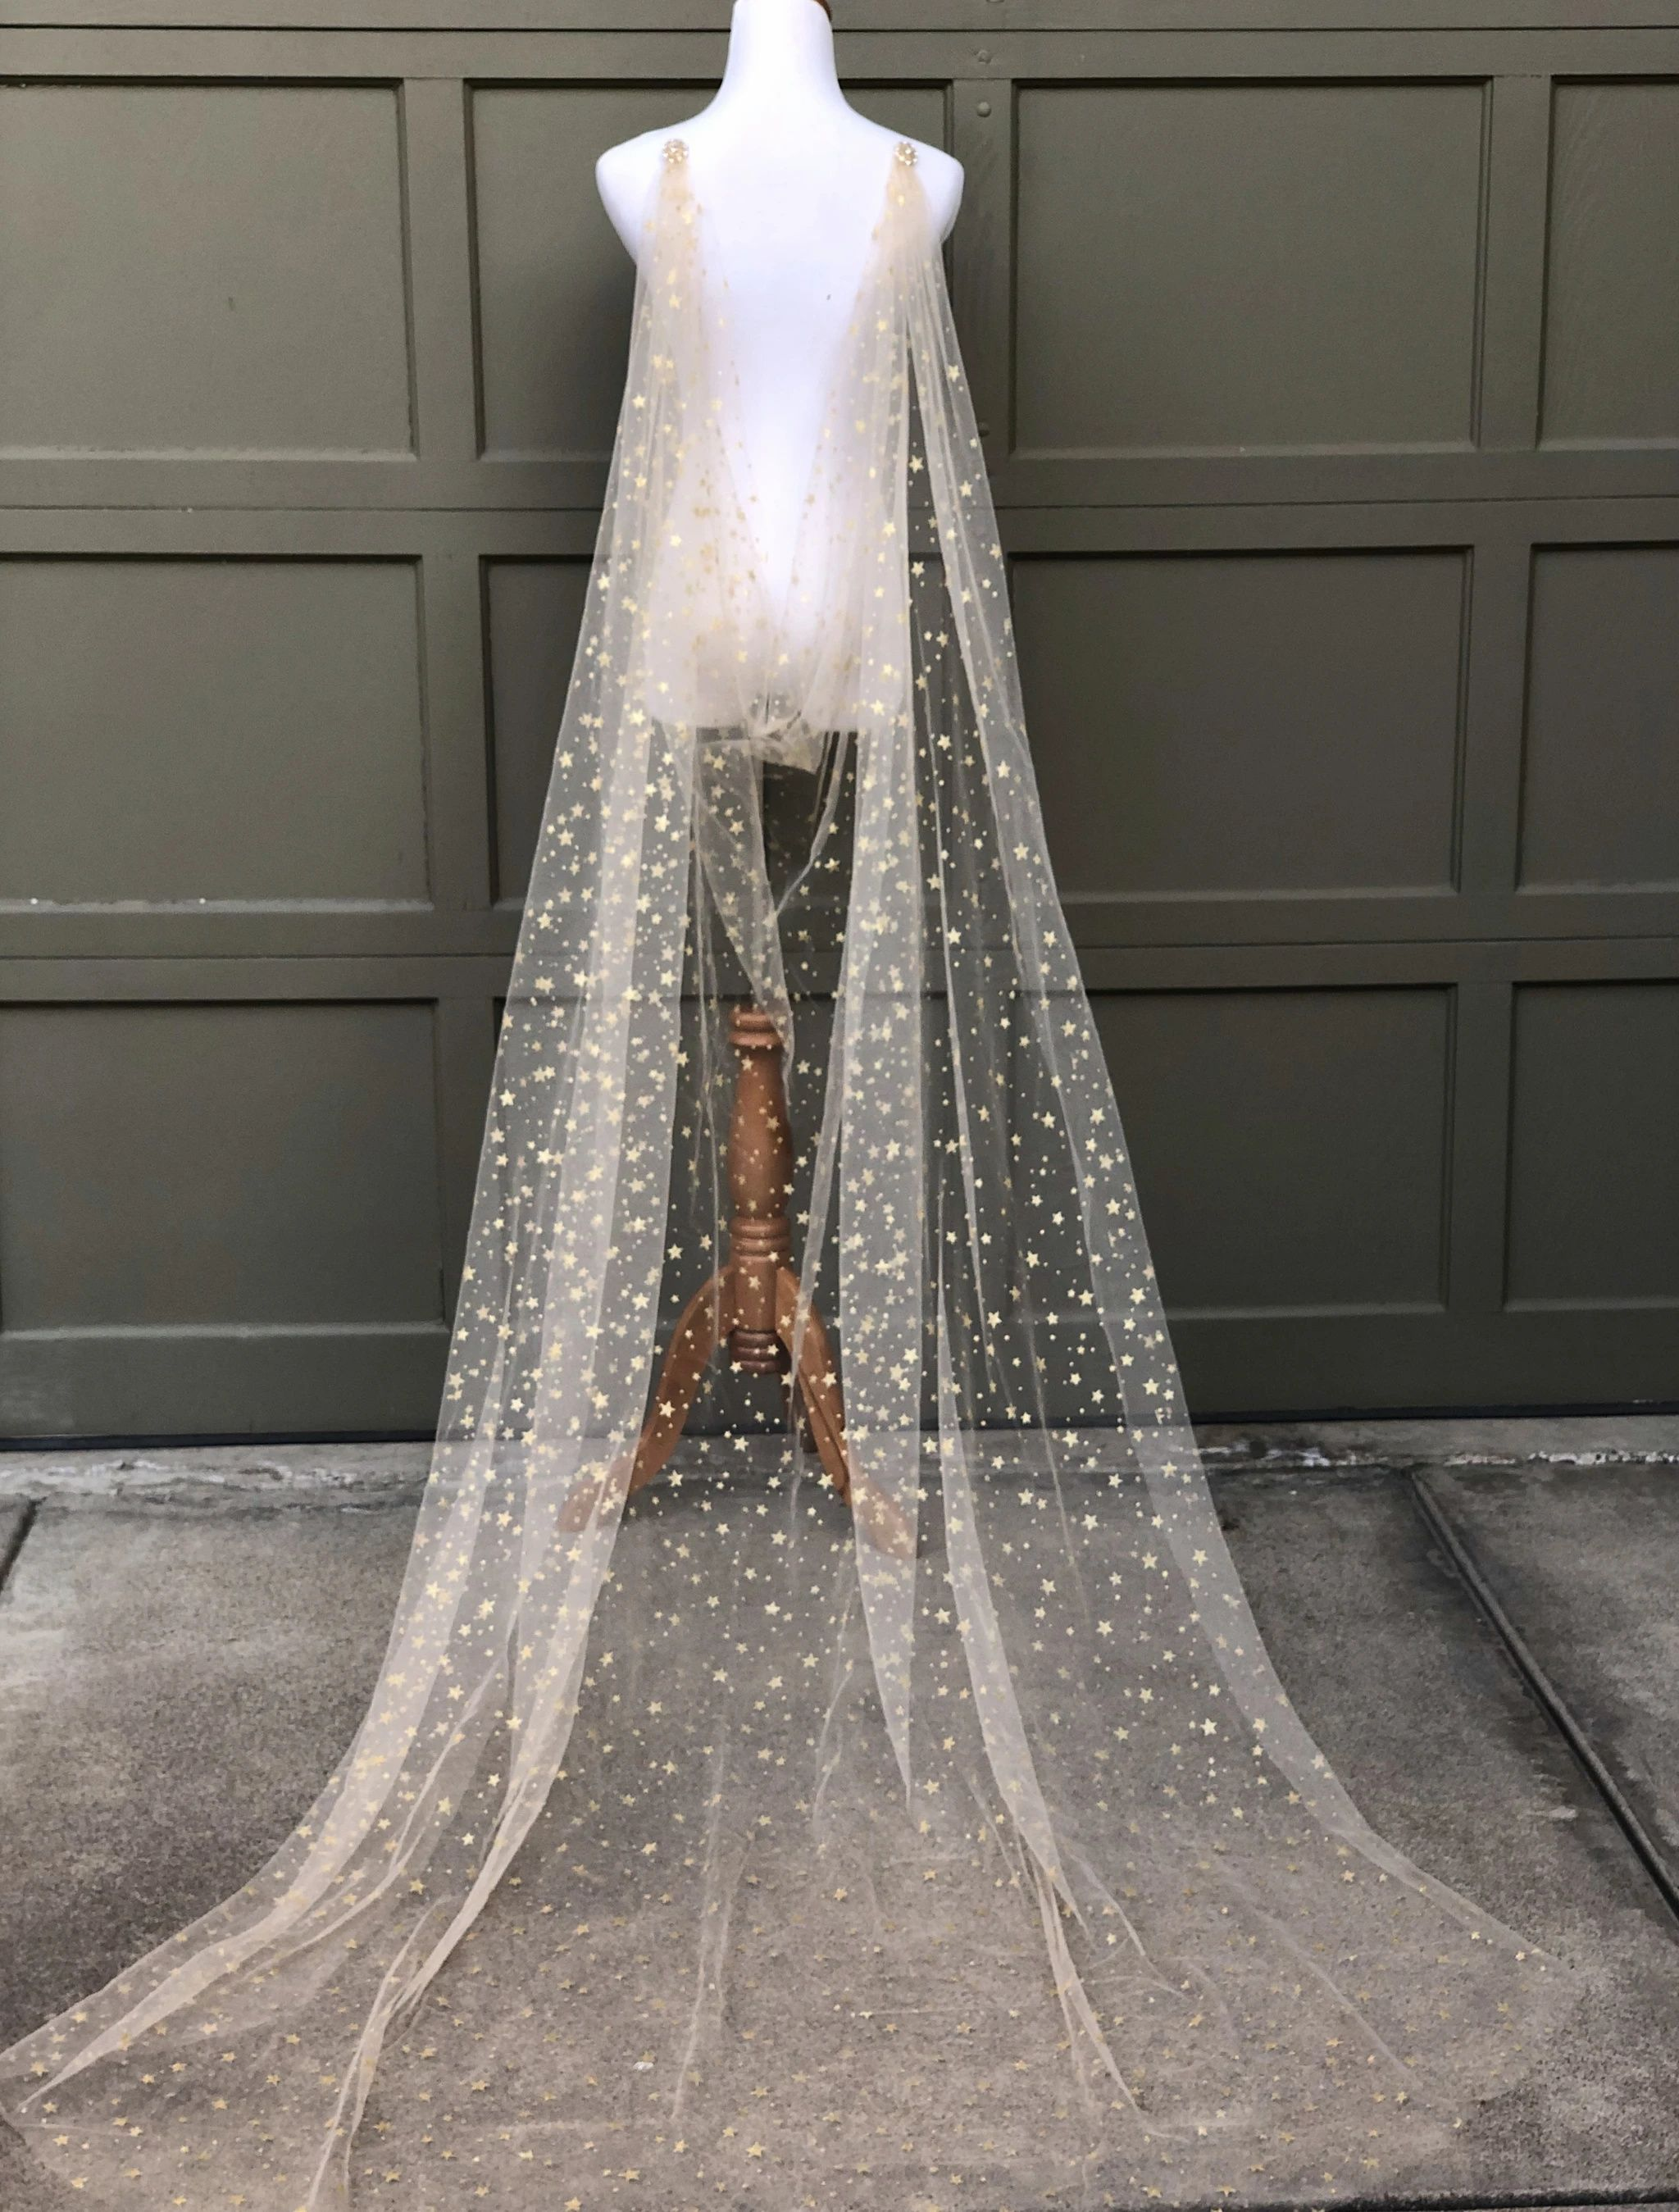 Celestial Sparkly Gold Star Draped Wedding Cape Sheer Long Bridal Wrap With Beaded Pins In 2020 Wedding Cape Veil Bridal Cape Wedding Cape